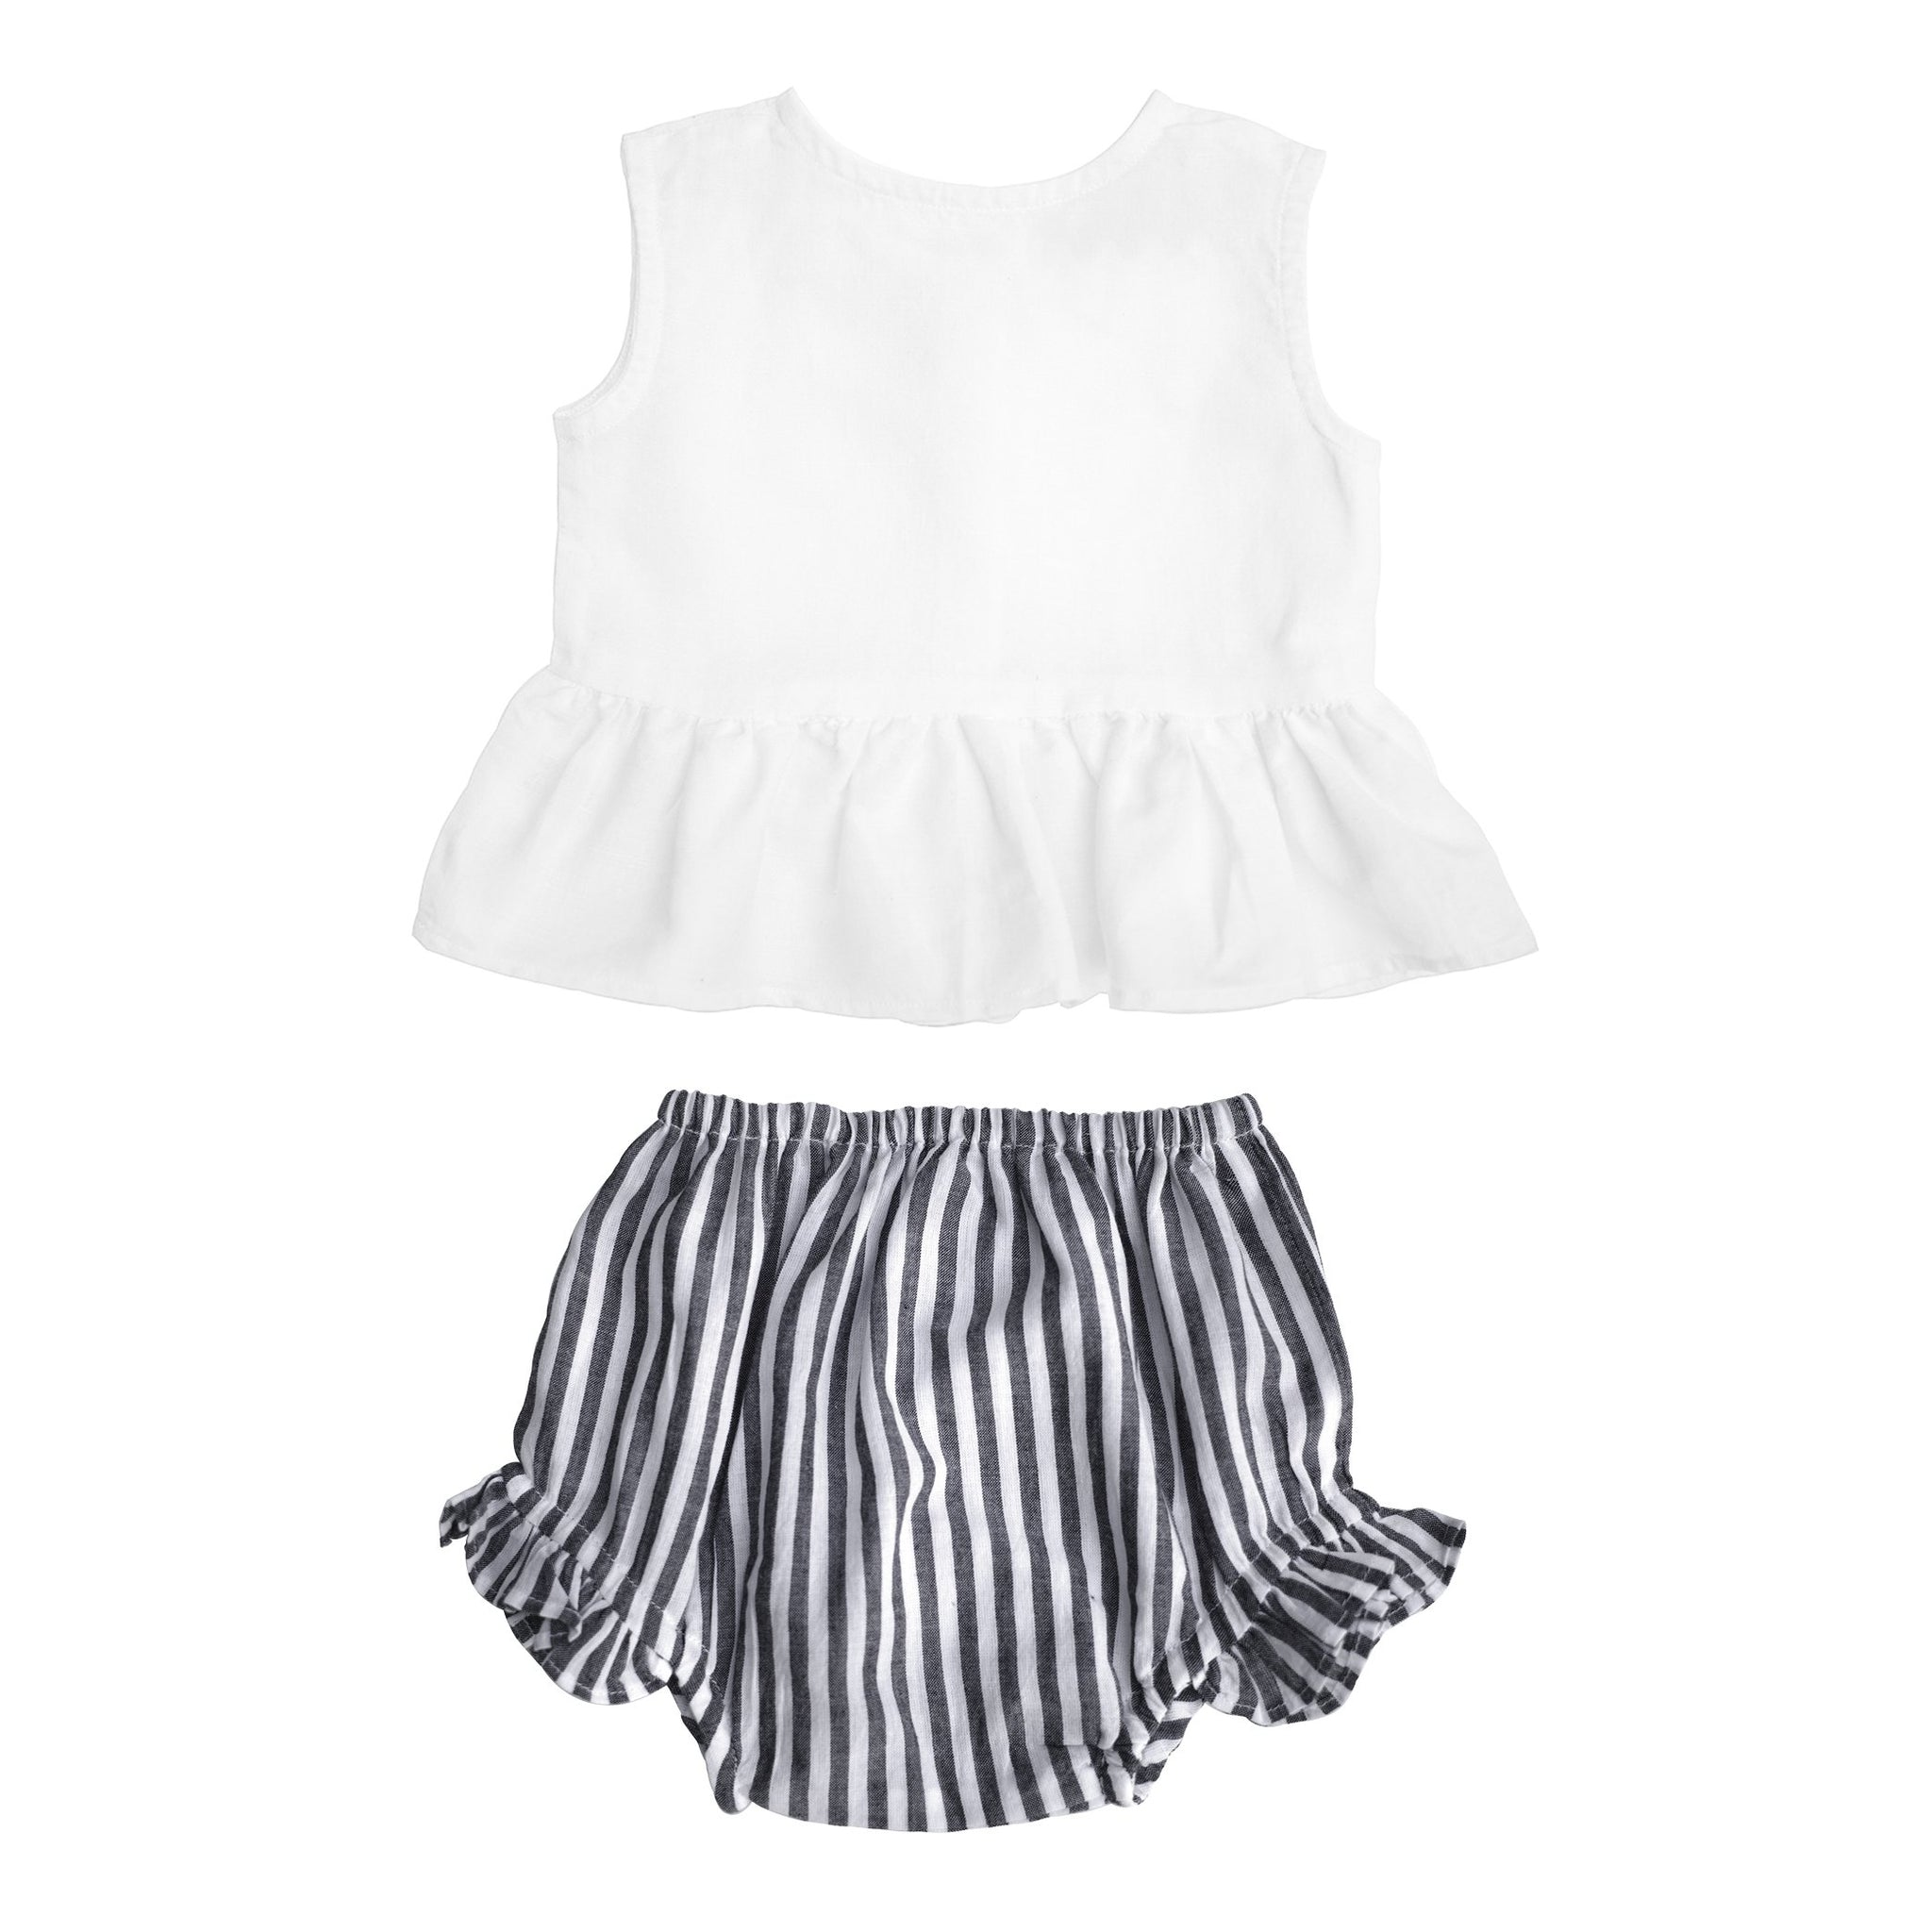 Gift set | Sleeveless White Frill Blouse and Harbor Island Stripe Frill Bloomer